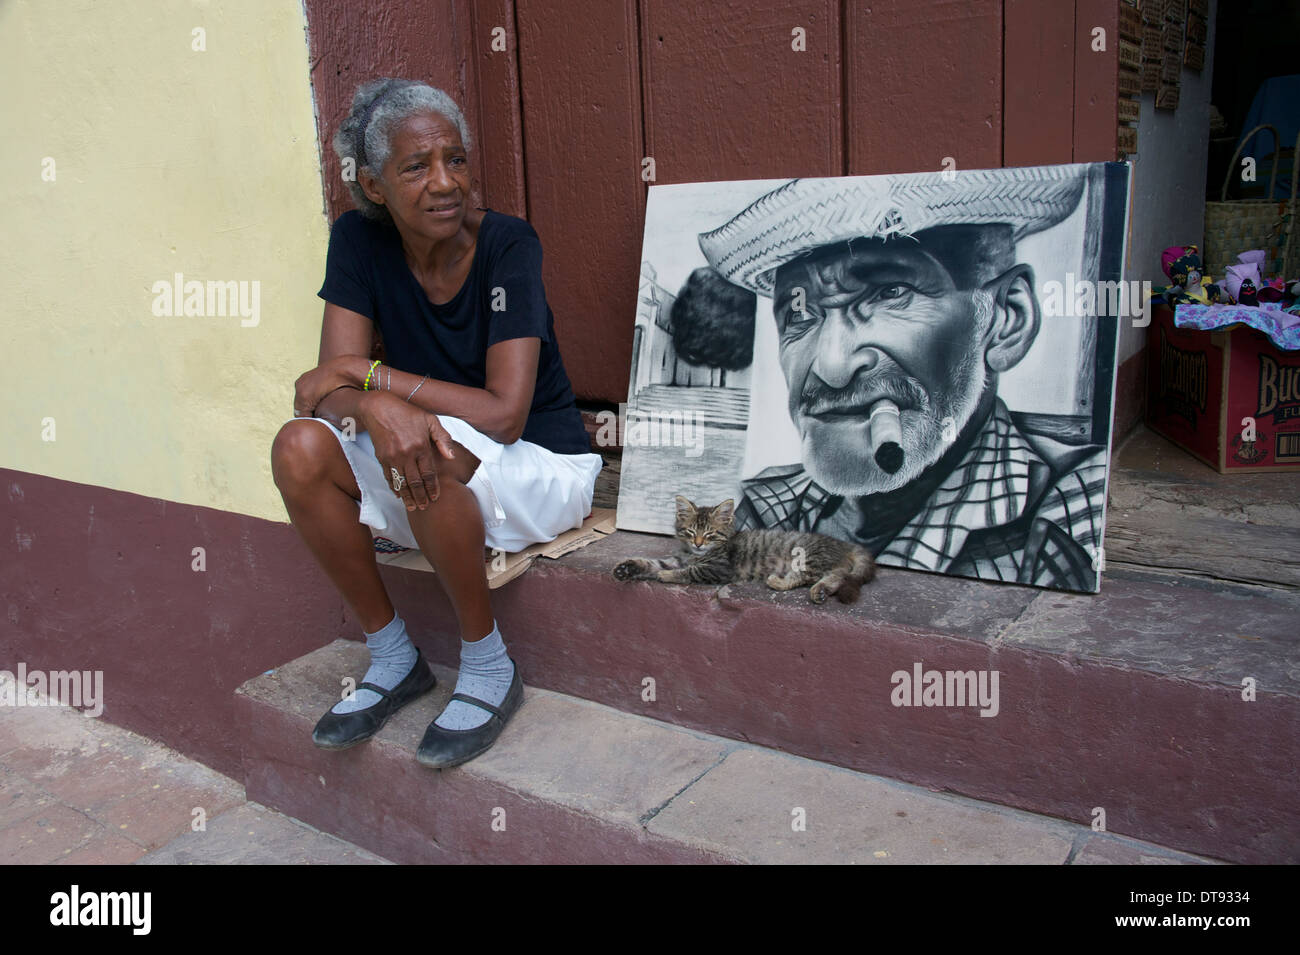 Woman with picture and kitten on step, Trinidad, Cuba - Stock Image